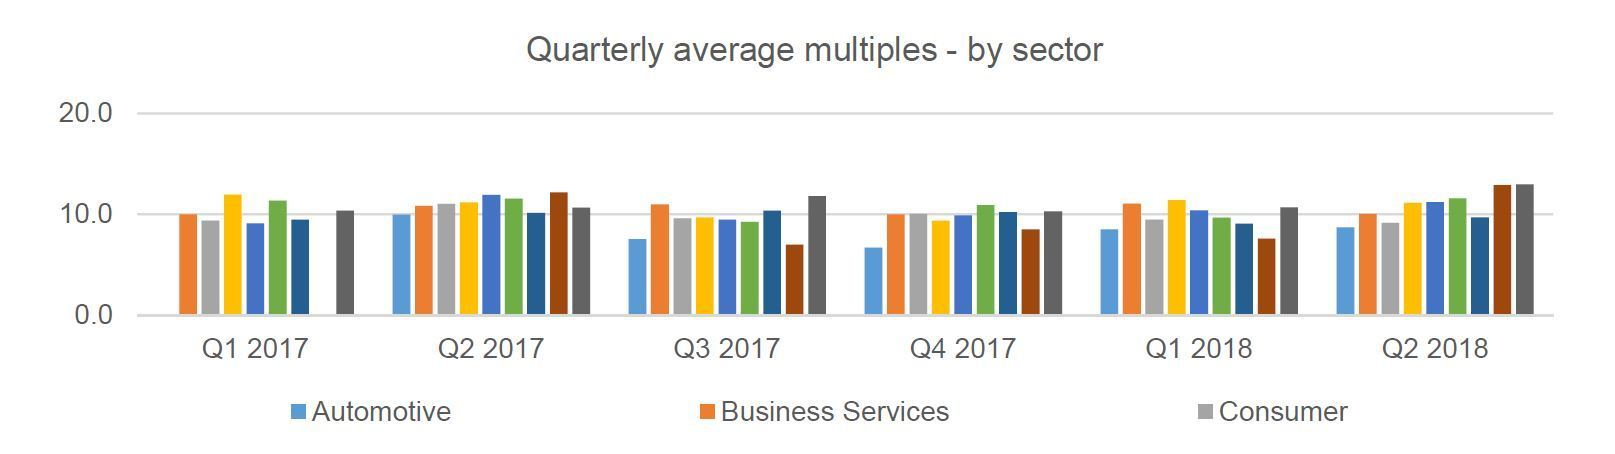 Multiples Heatmap Q2 2018 Quarterly Sector